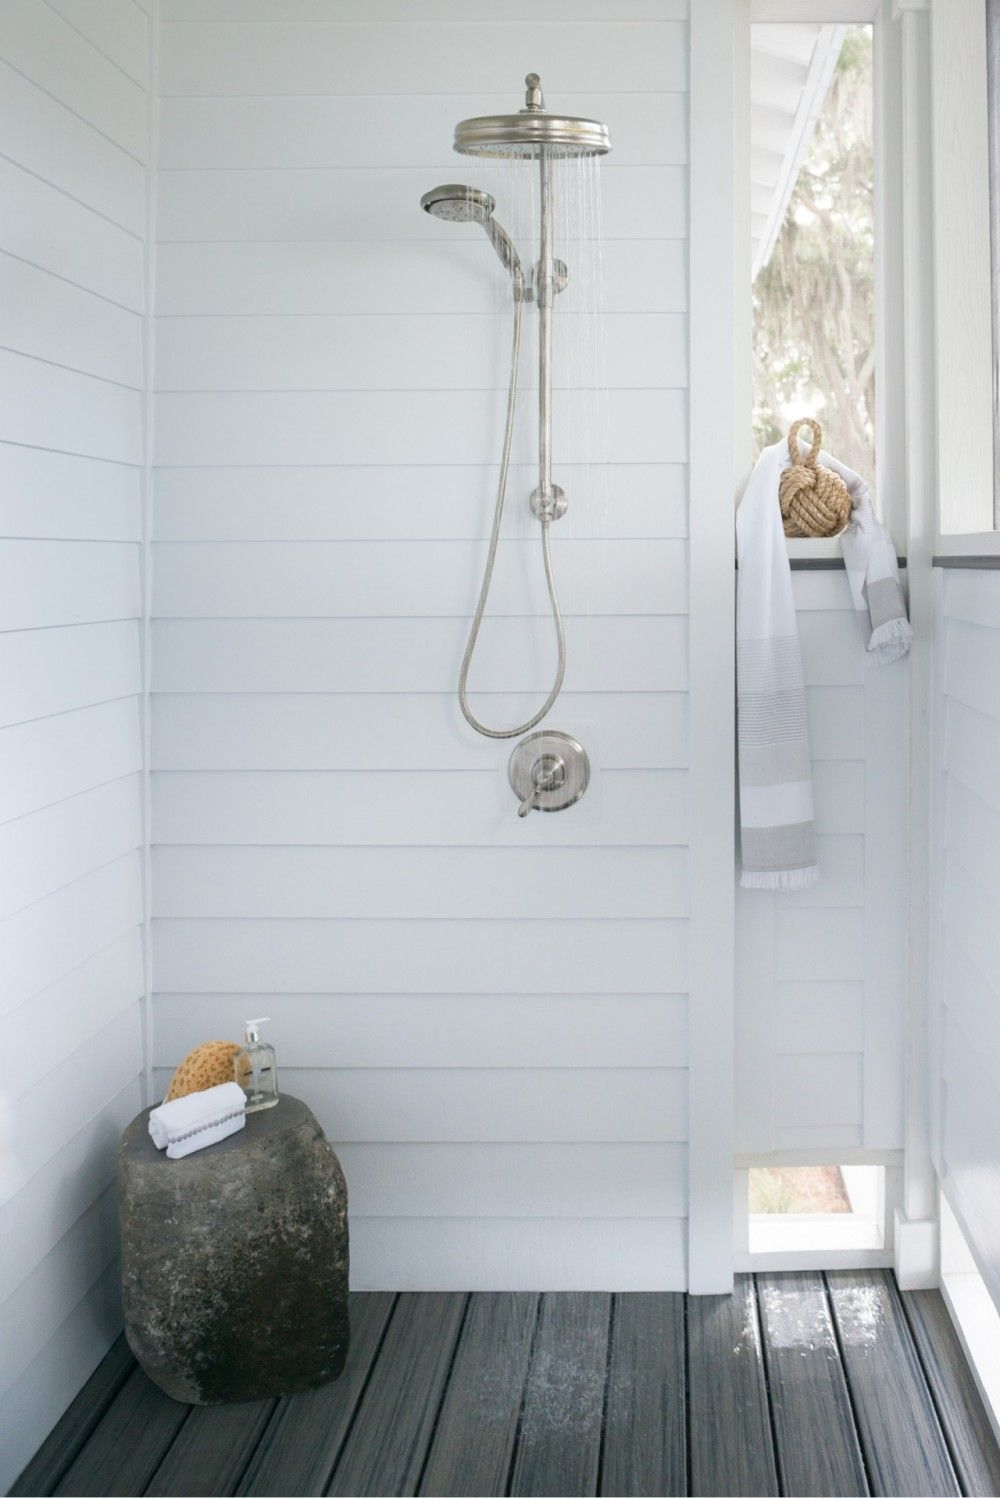 Low Country Retreat | Bath | Pinterest | Outdoor bathrooms, Rustic ...